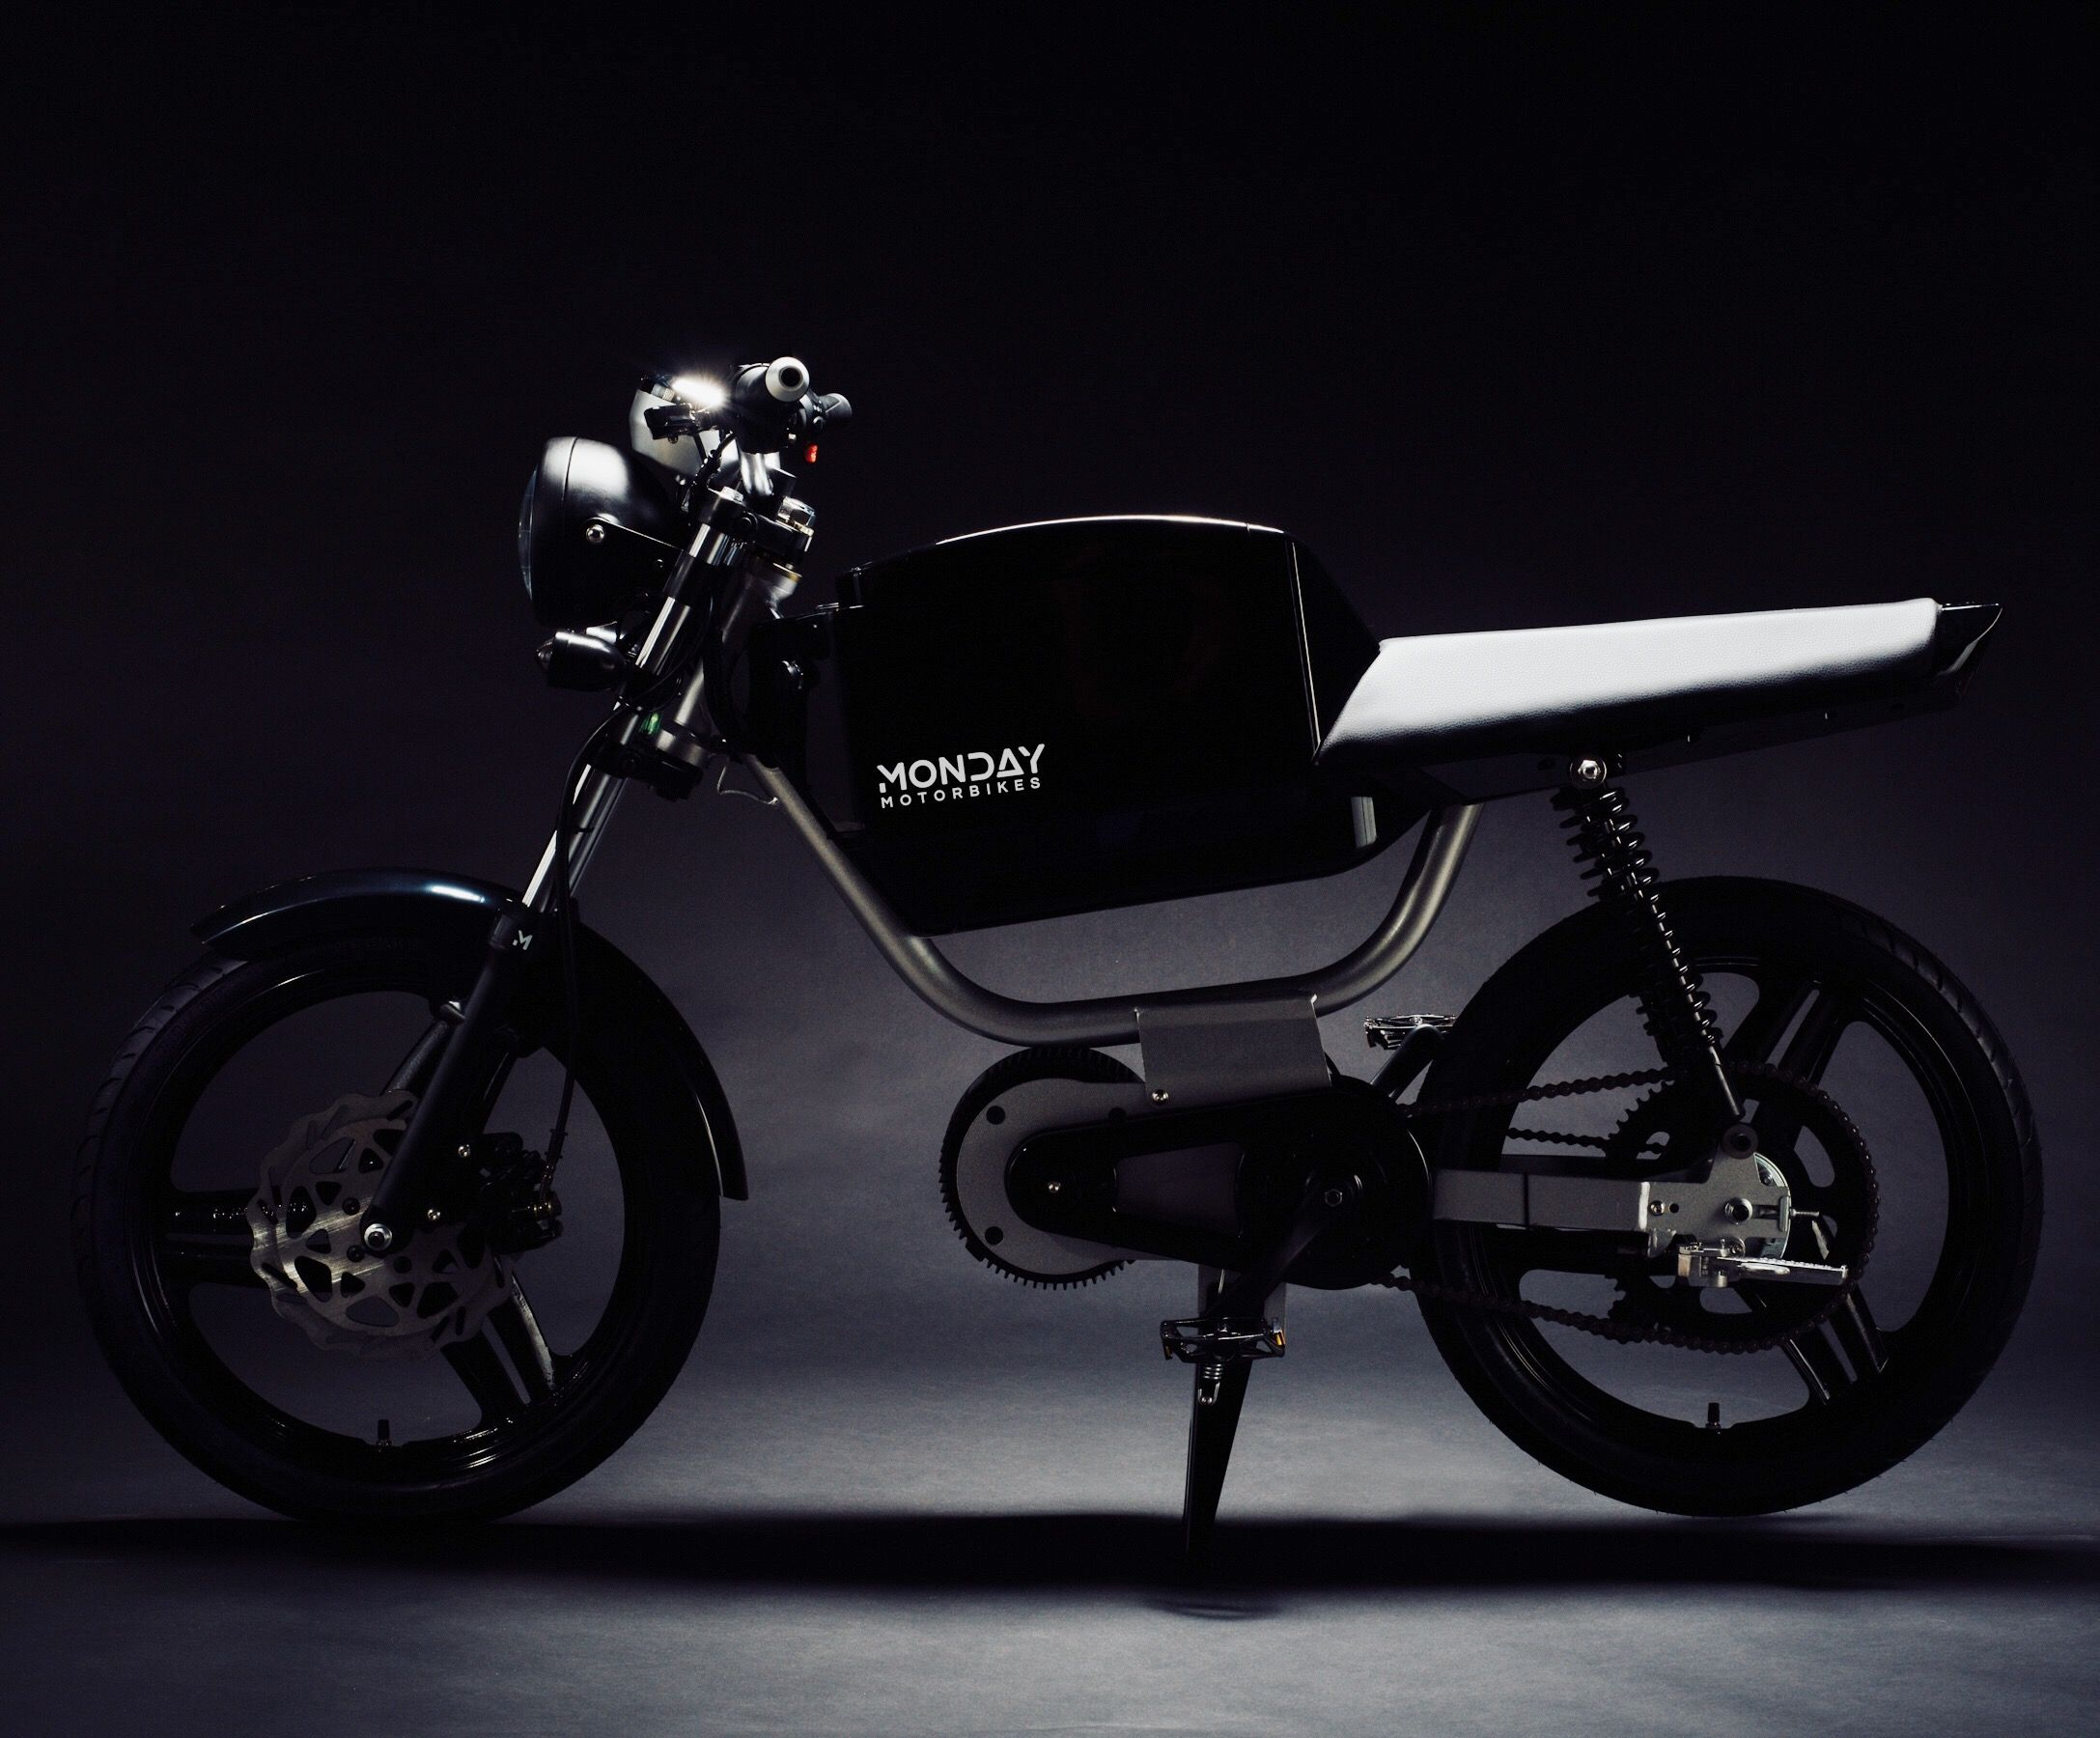 Presenting The All New Gen7 Motorbike From Motorbike With A Range